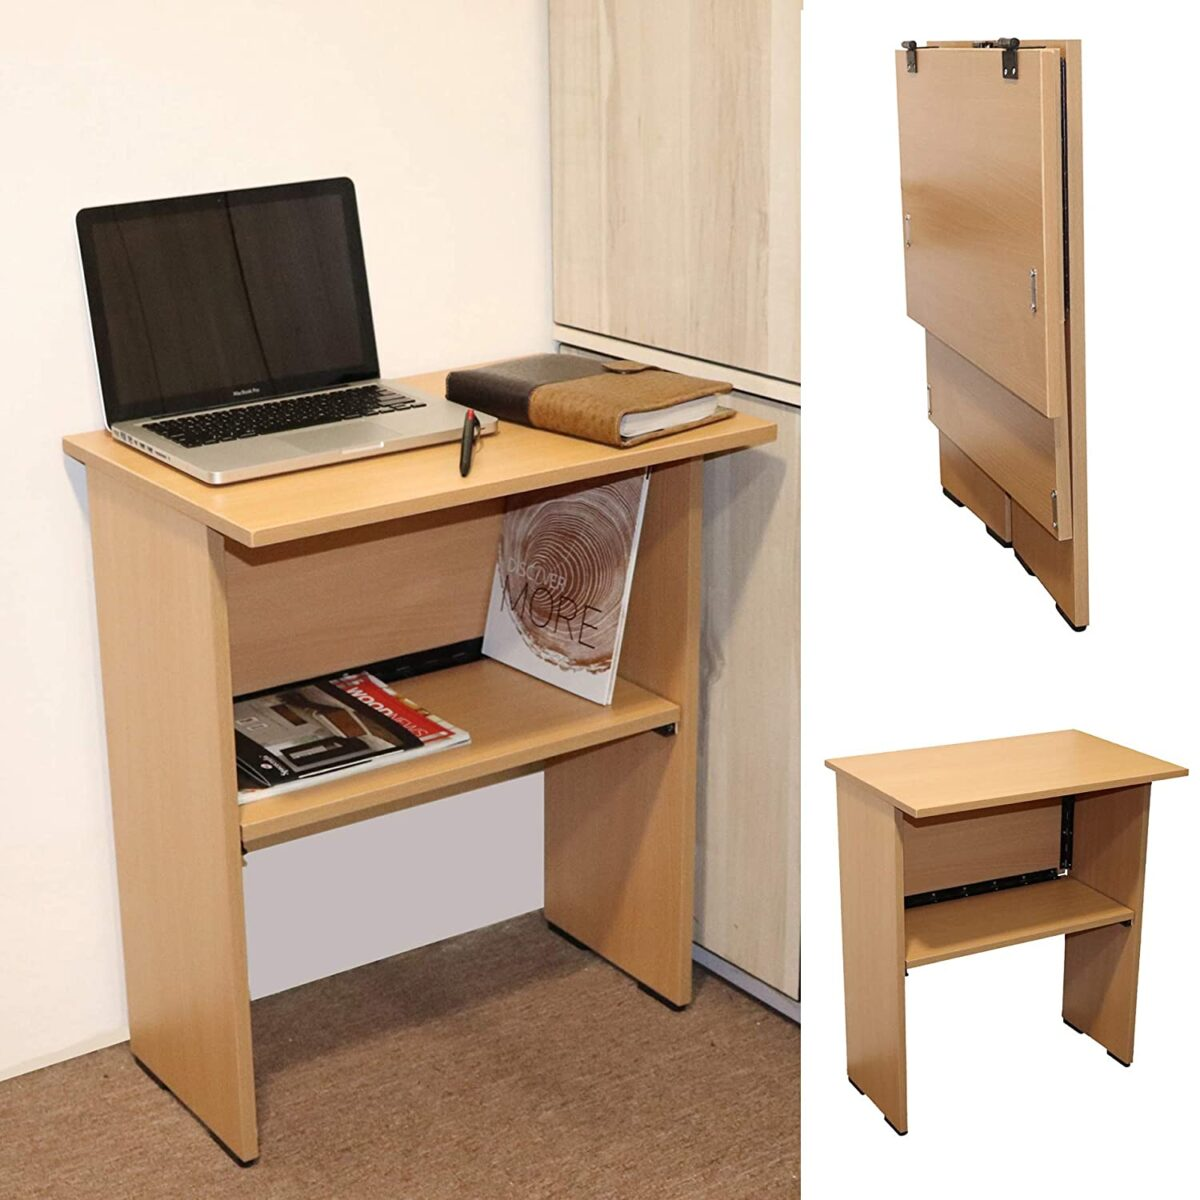 Work from Home Wood Folding Computer Table for Laptop Study Office Desk